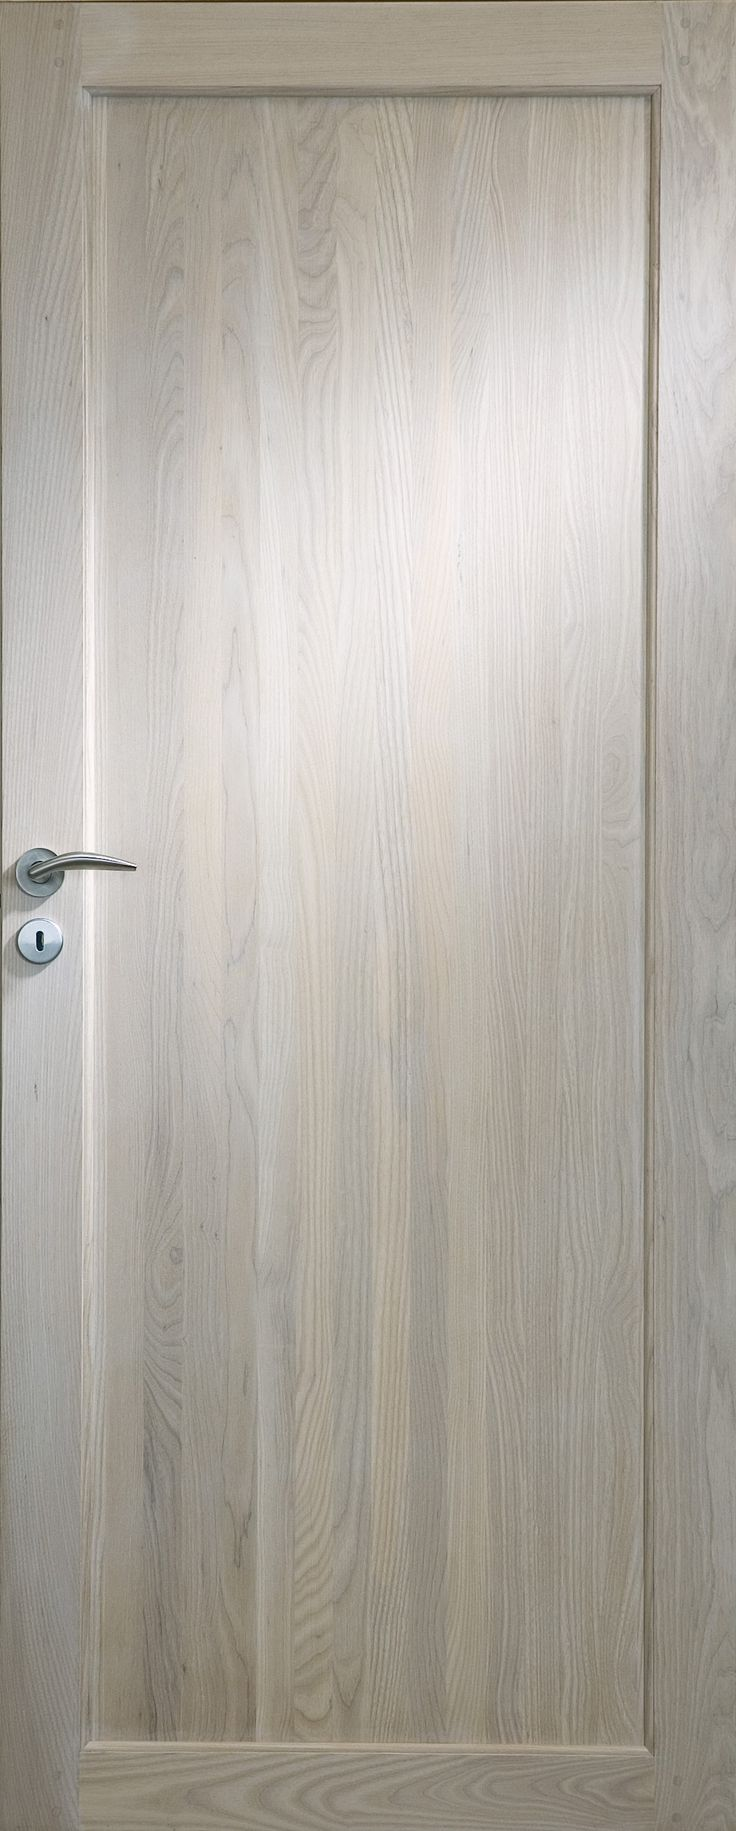 Modern interior doors seattle - Idea For Floor Covering To Go With Grey Doors And White Frames Modern Interior Door